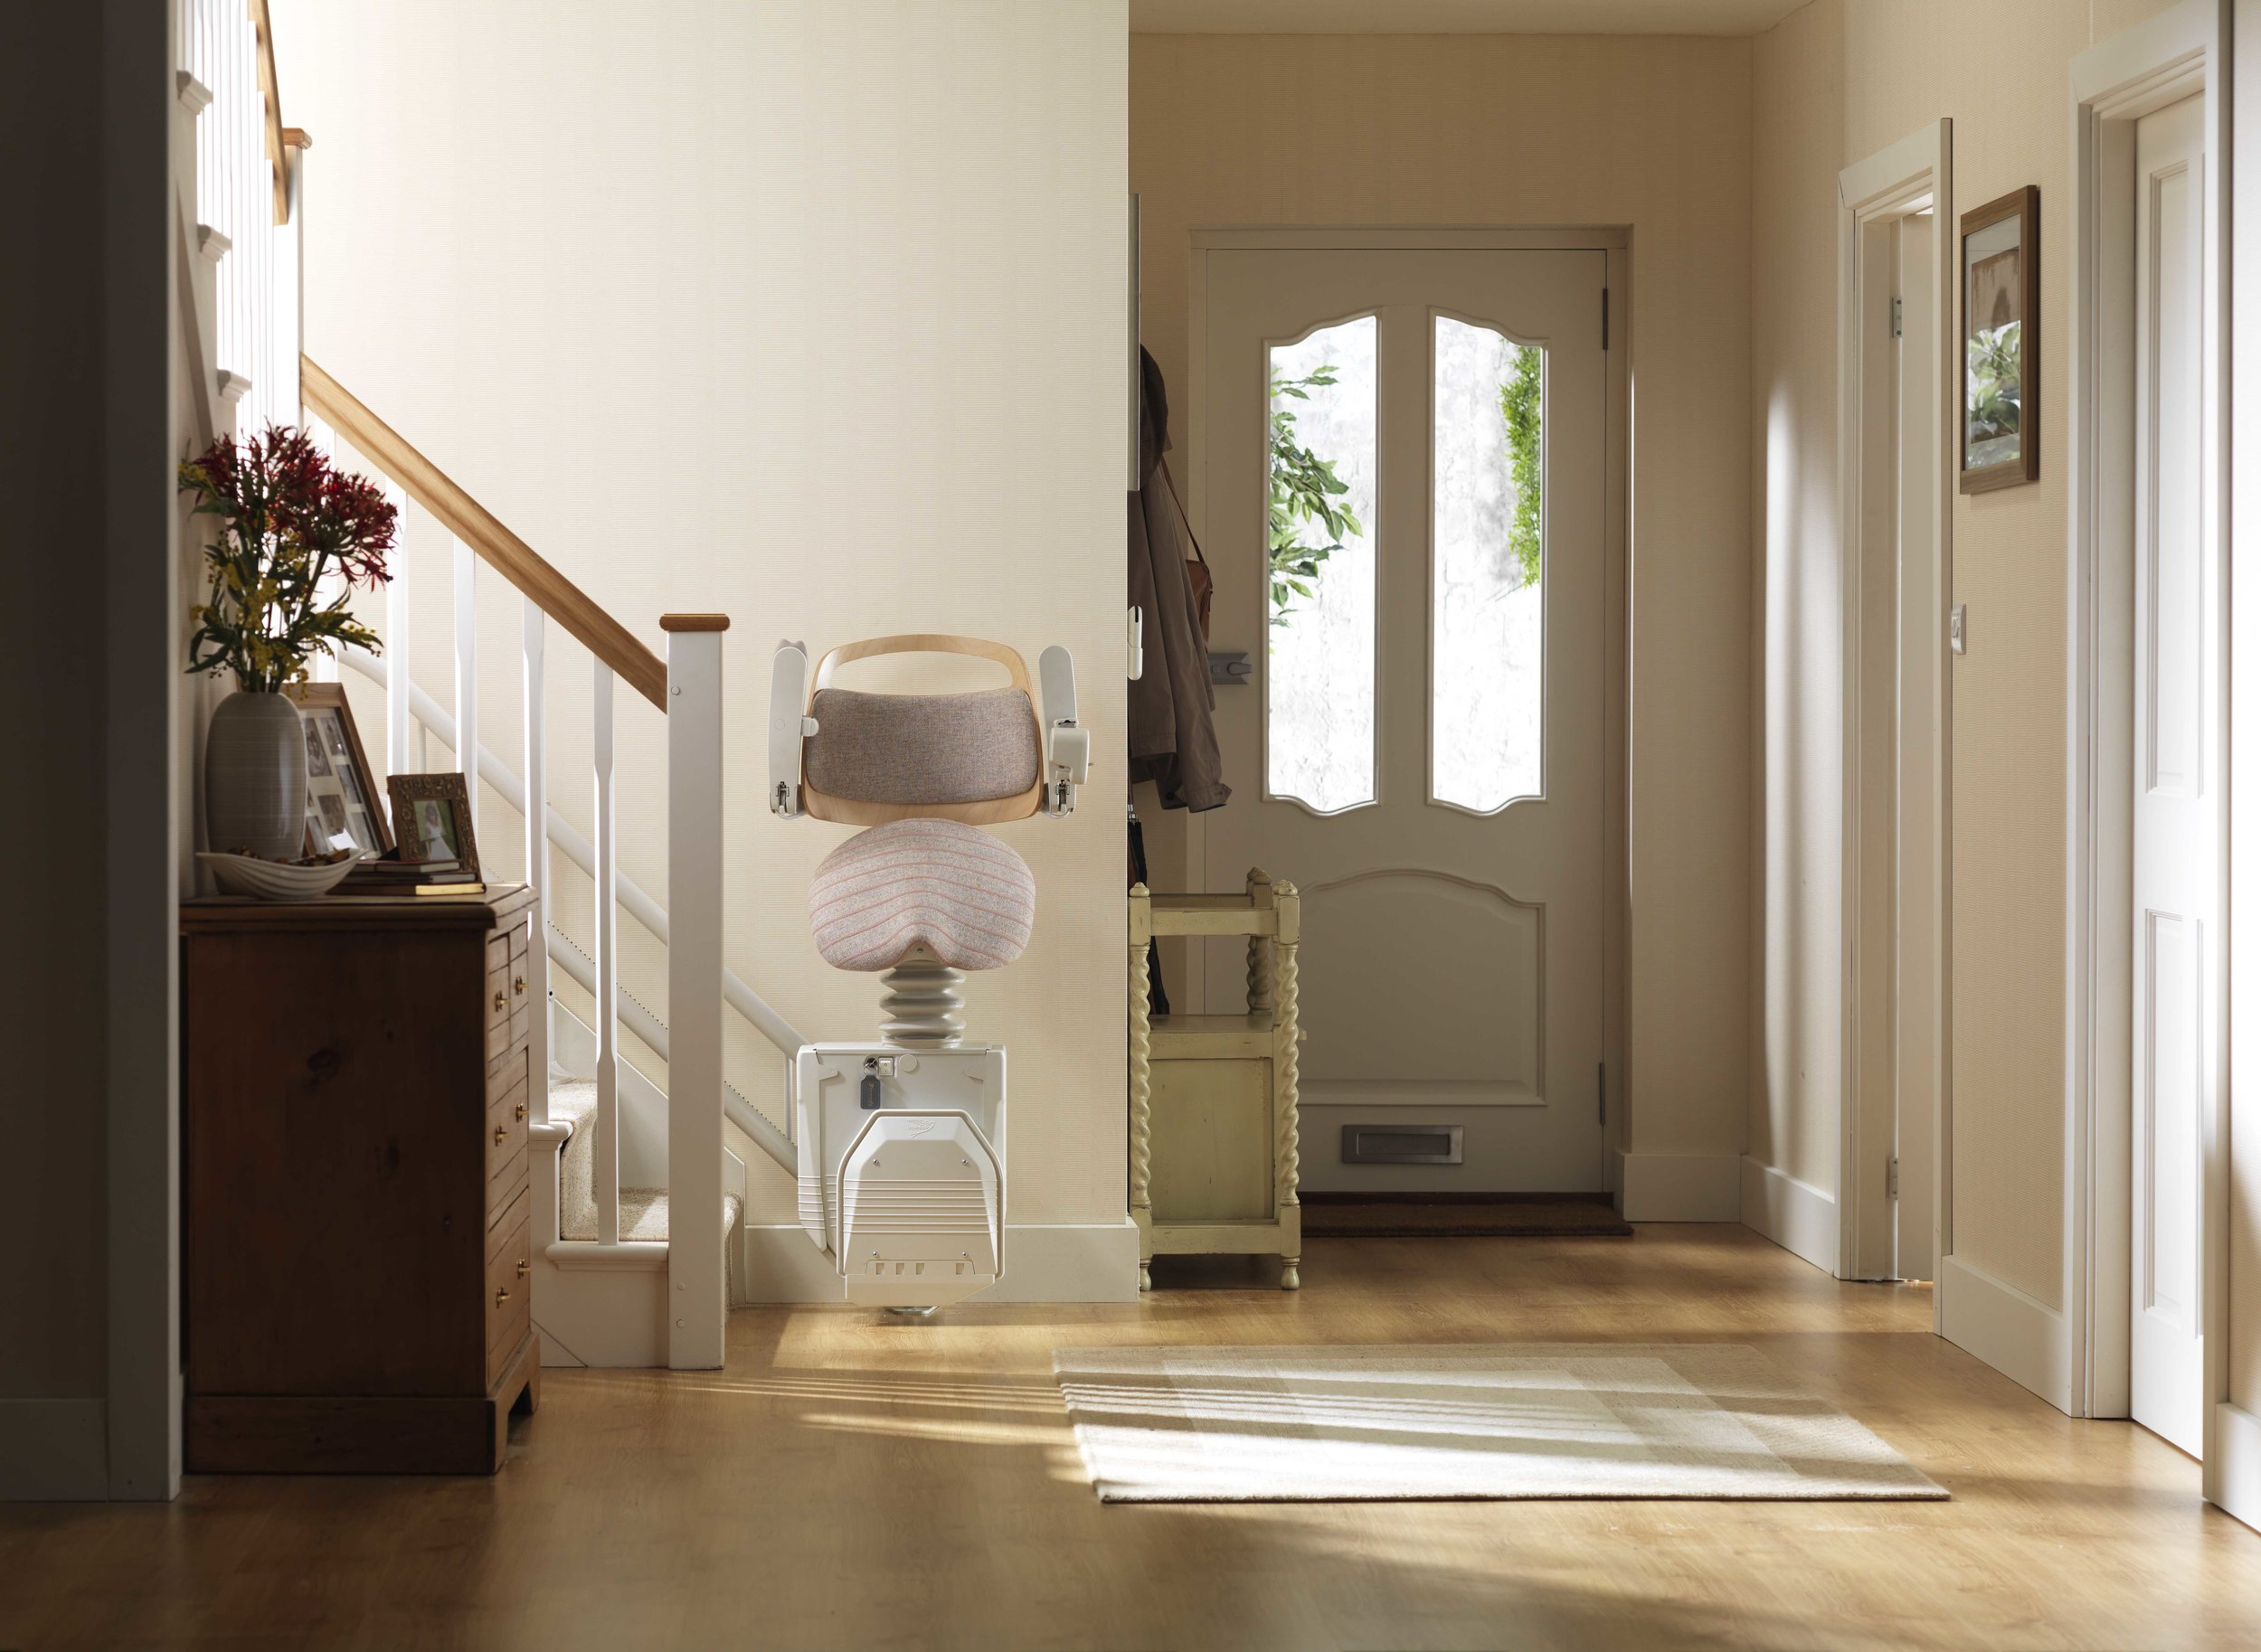 Stannah Sadler Perching Stairlift for Curved Stairs